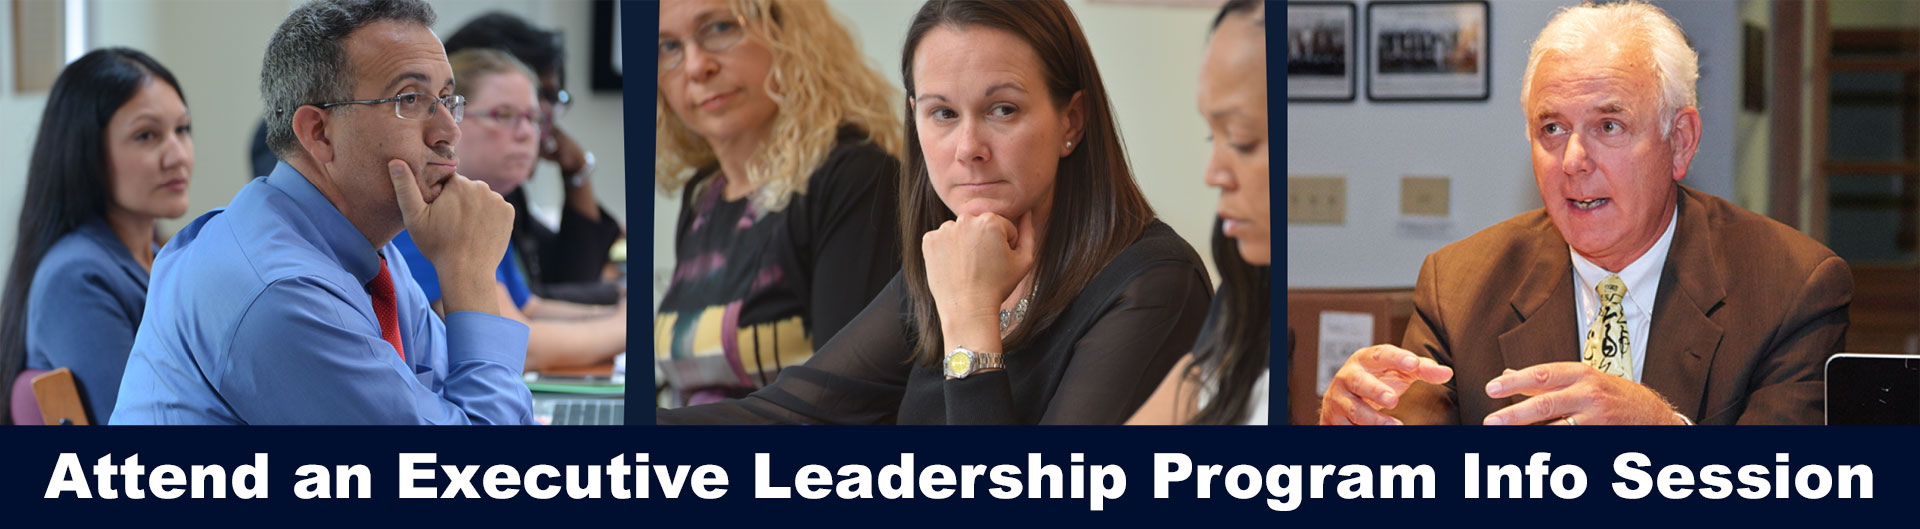 Attend an Executive Leadership Program Info Session